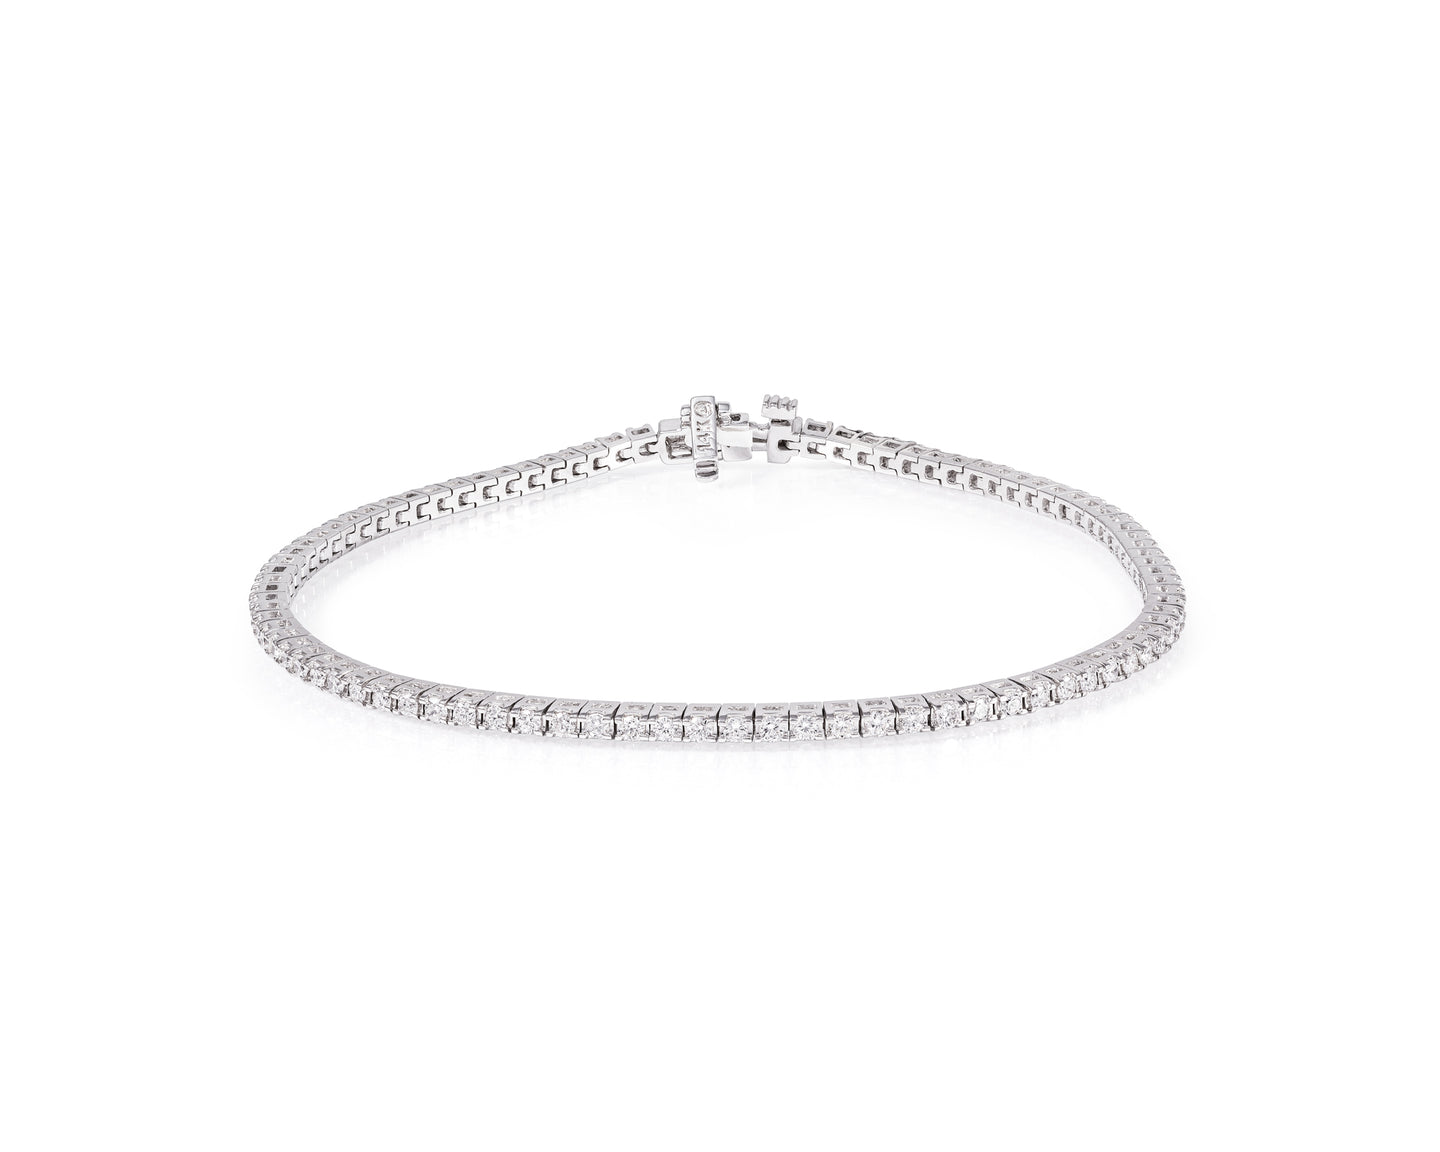 2ct Diamond and White Gold Tennis Bracelet